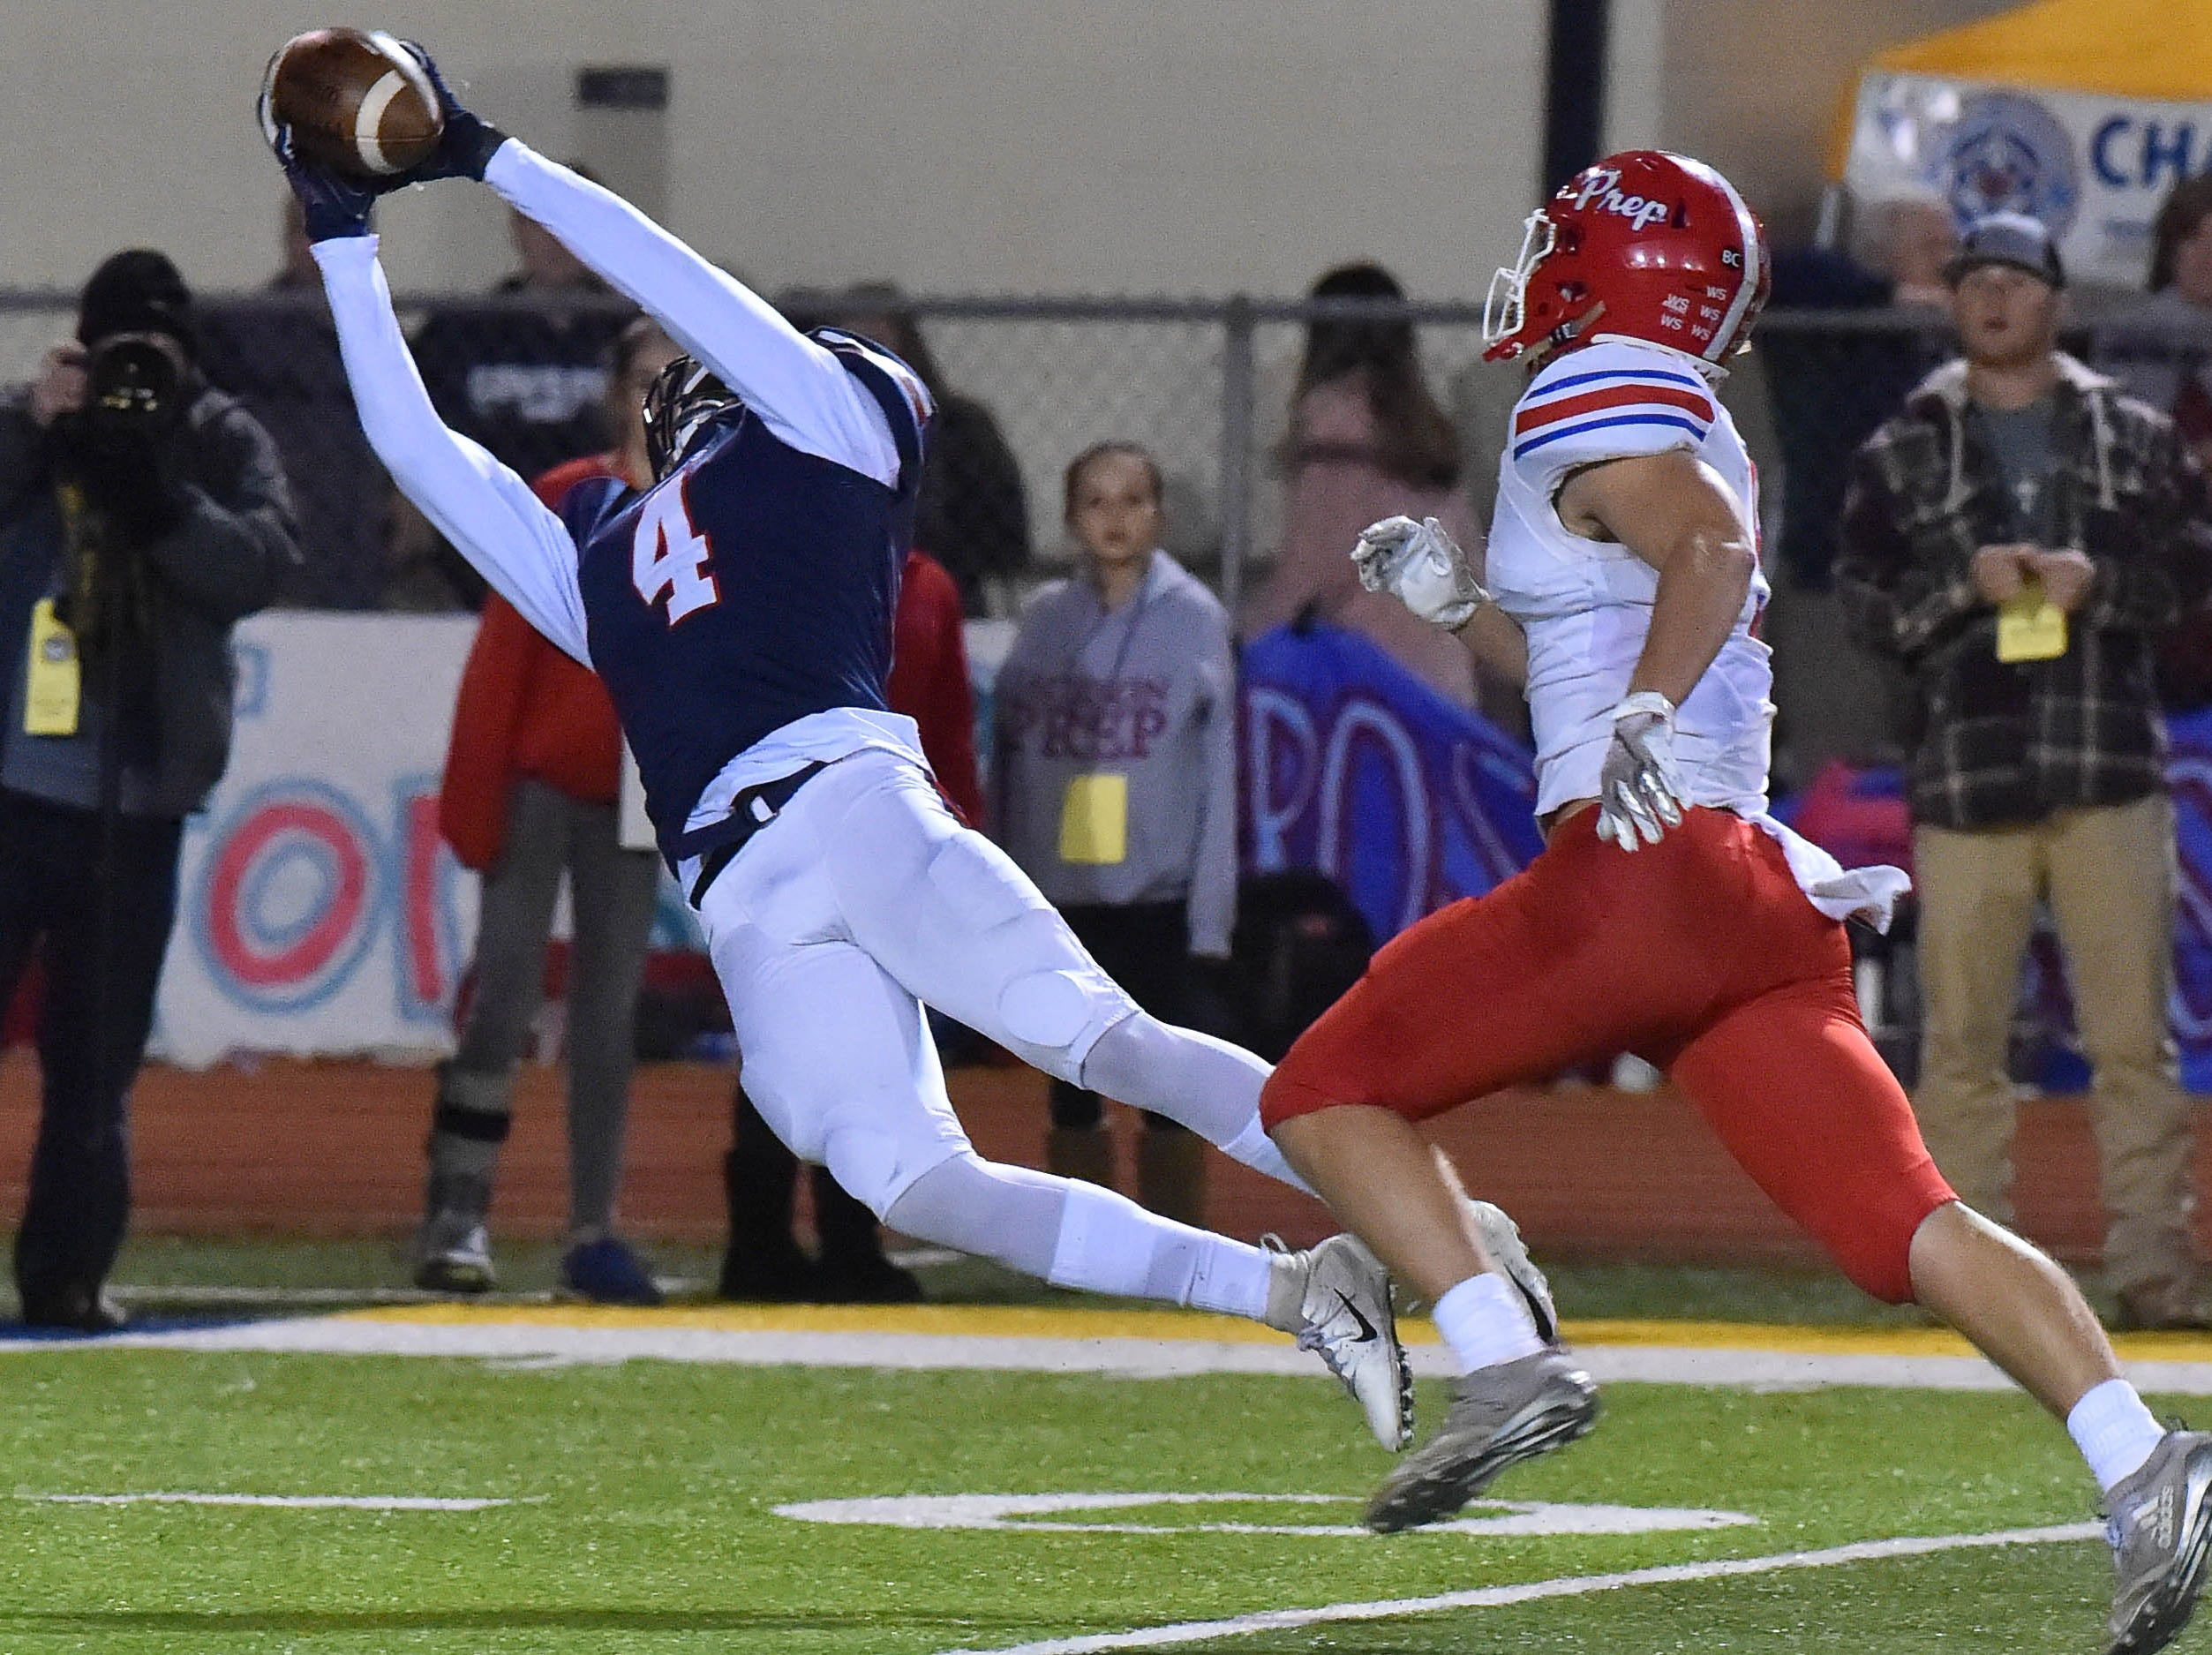 Madison Ridgeland Academy receiver Joseph Perkins (4) makes a catch against Jackson Prep during the MAIS Class AAAA Championship Football game held at Jackson Academy in Jackson, MS, Thursday November 16, 2018.(Bob Smith-For The Clarion Ledger)